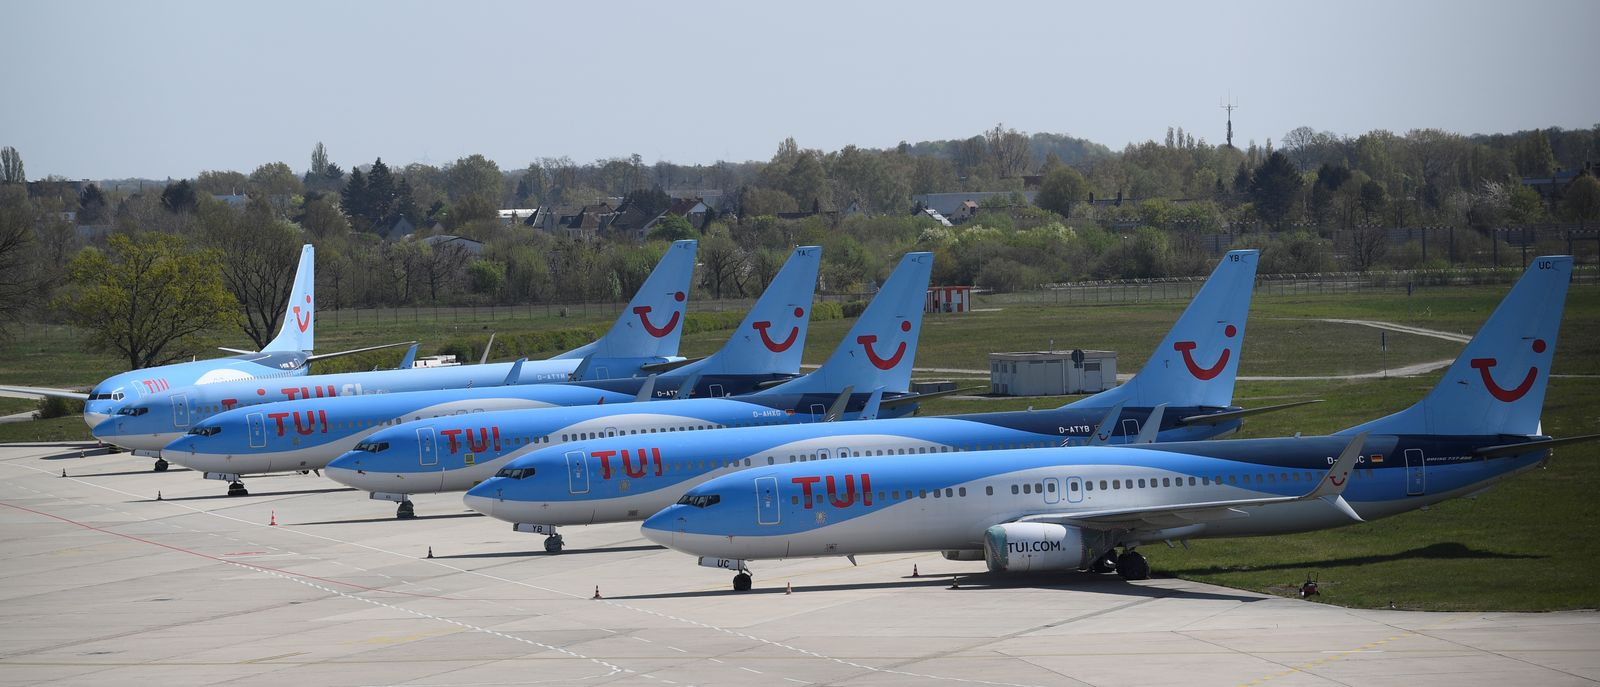 FILE PHOTO: Planes of the German carrier Tui are parked on a closed runway during the spread of the coronavirus disease (COVID-19) at the airport in Hanover,